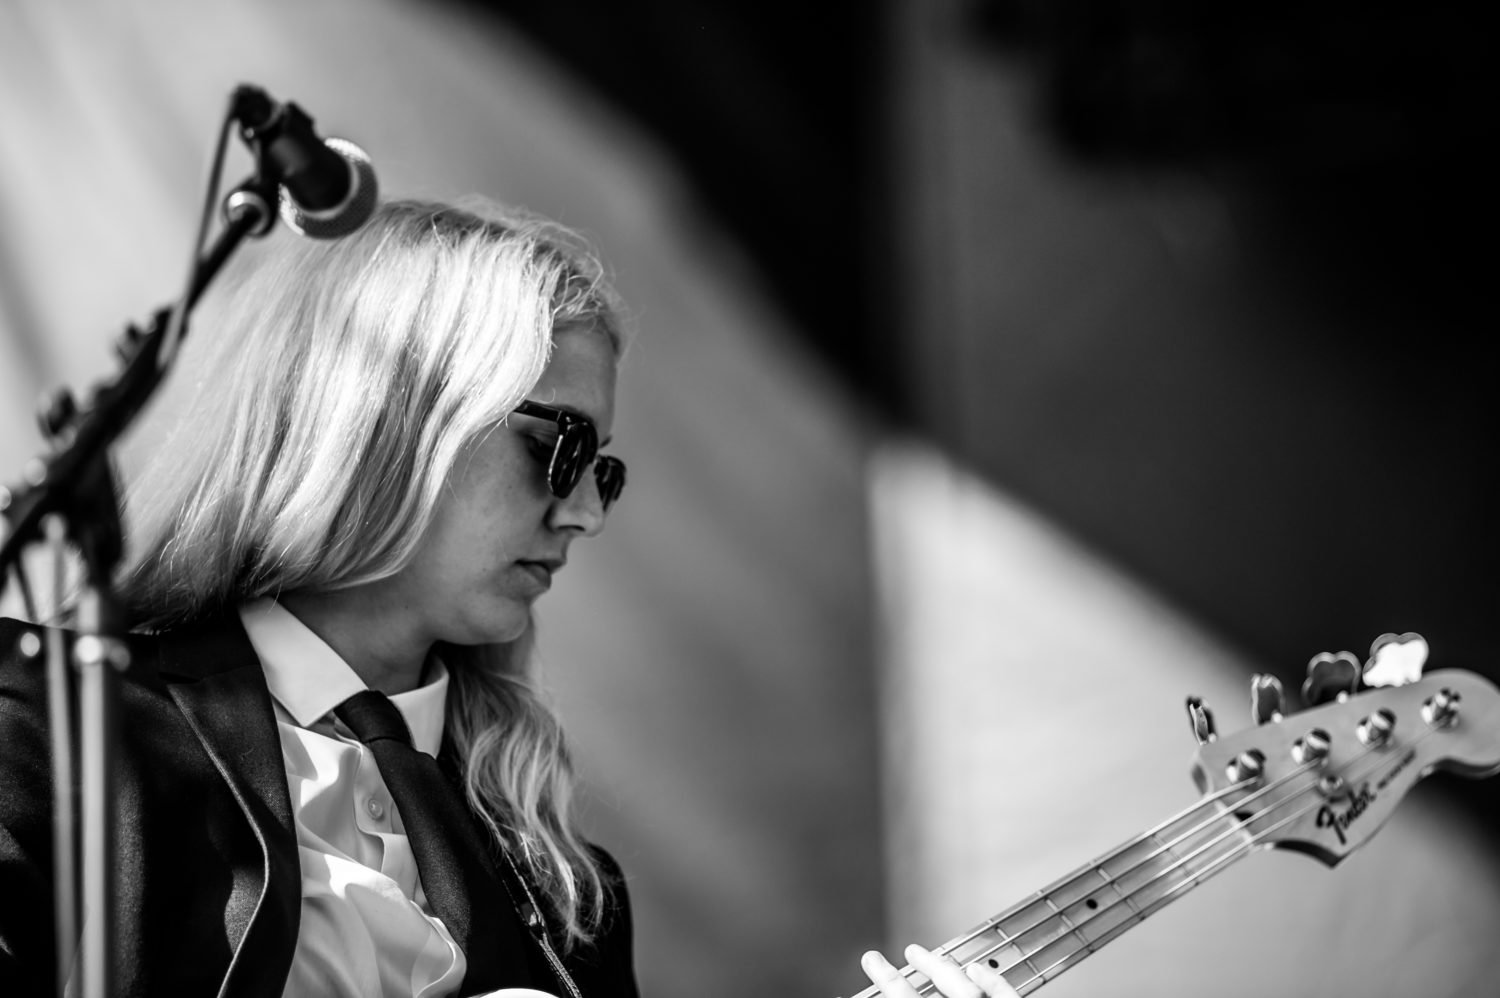 Phoebe Bridgers performing at 80/35 Music Festival 2018 in Des Moines, Iowa